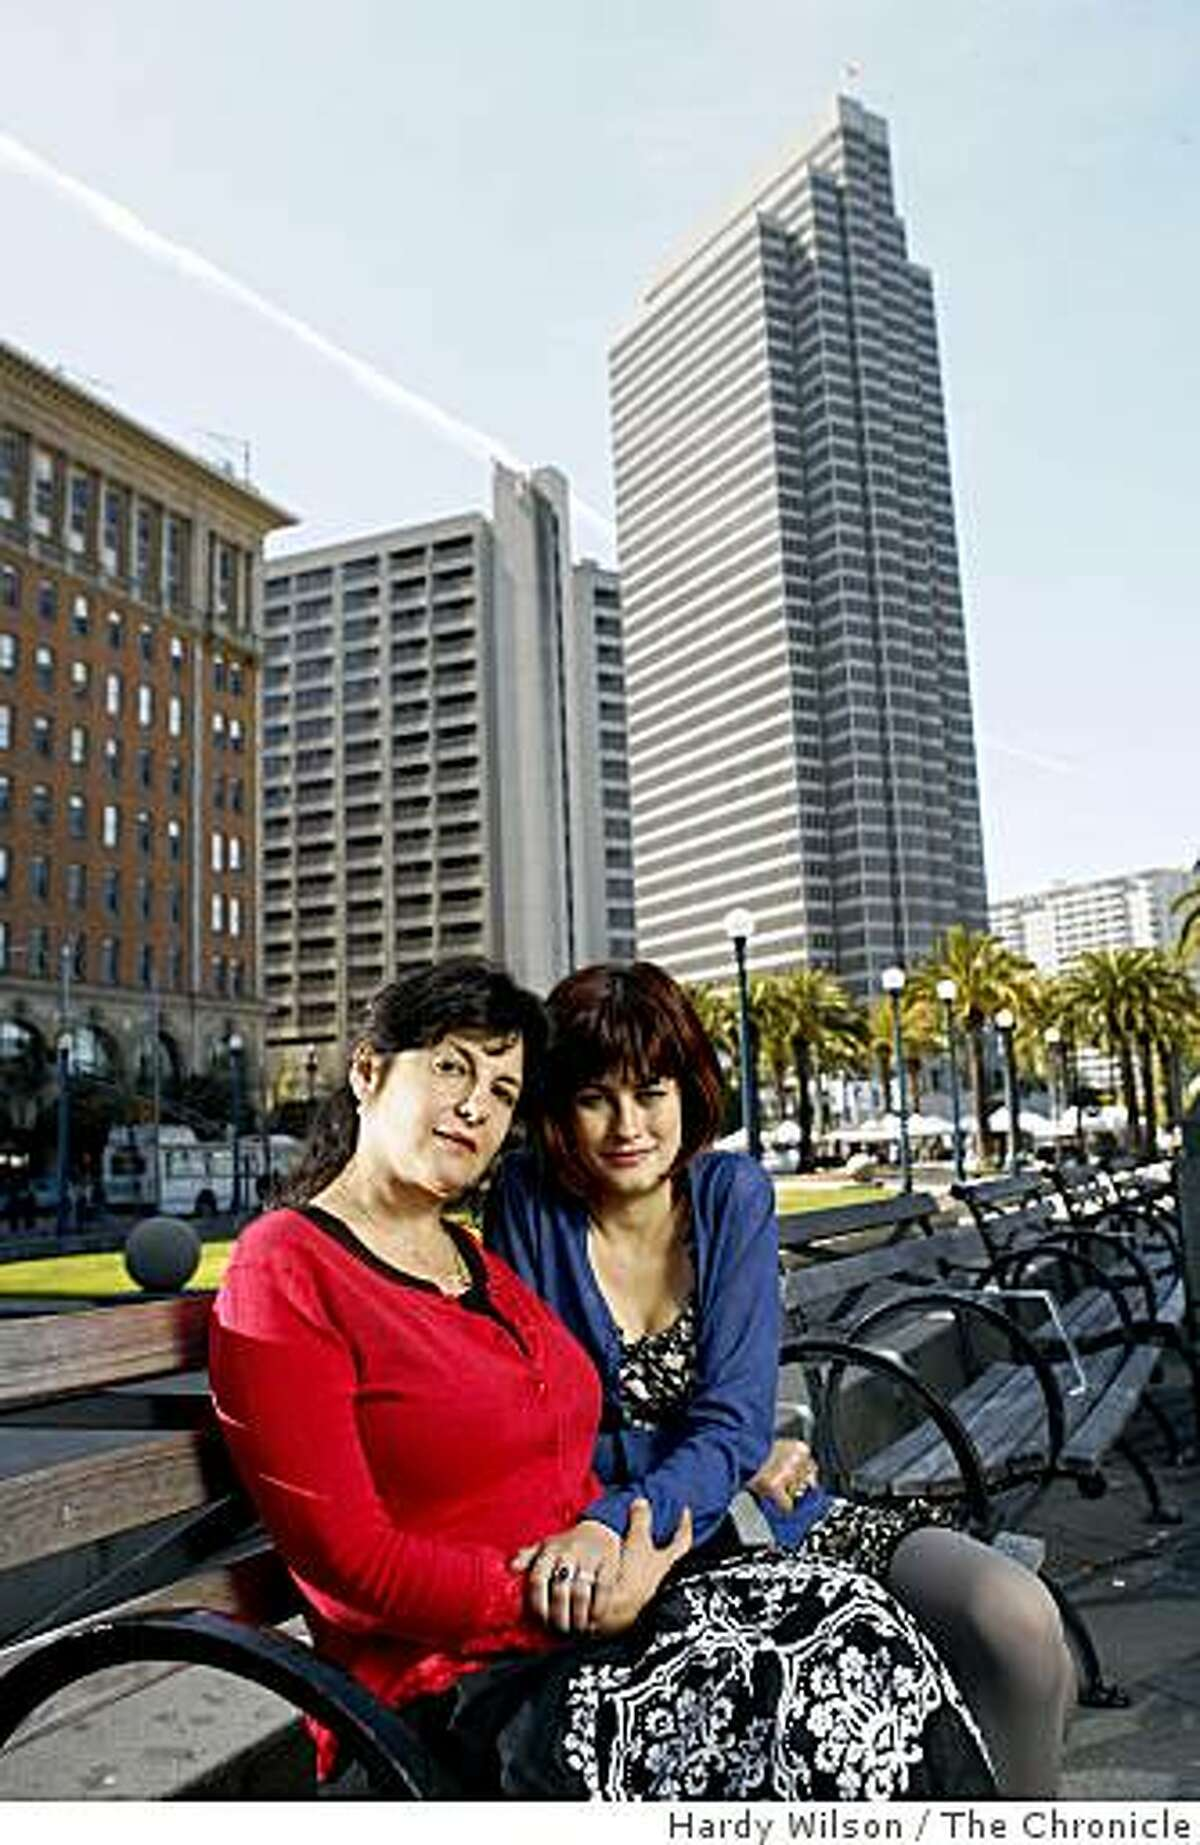 Ericka Lutz and her daughter Anaya Sonnenschein, 16, laugh as they pose for picture near the ferry building in San Francisco, Calif., on Friday, April 17, 2009. An essay Lutz wrote appears in the book, 'Because I Love Her: 34 Women Writers Reflect on the Mother-Daughter Bond'.